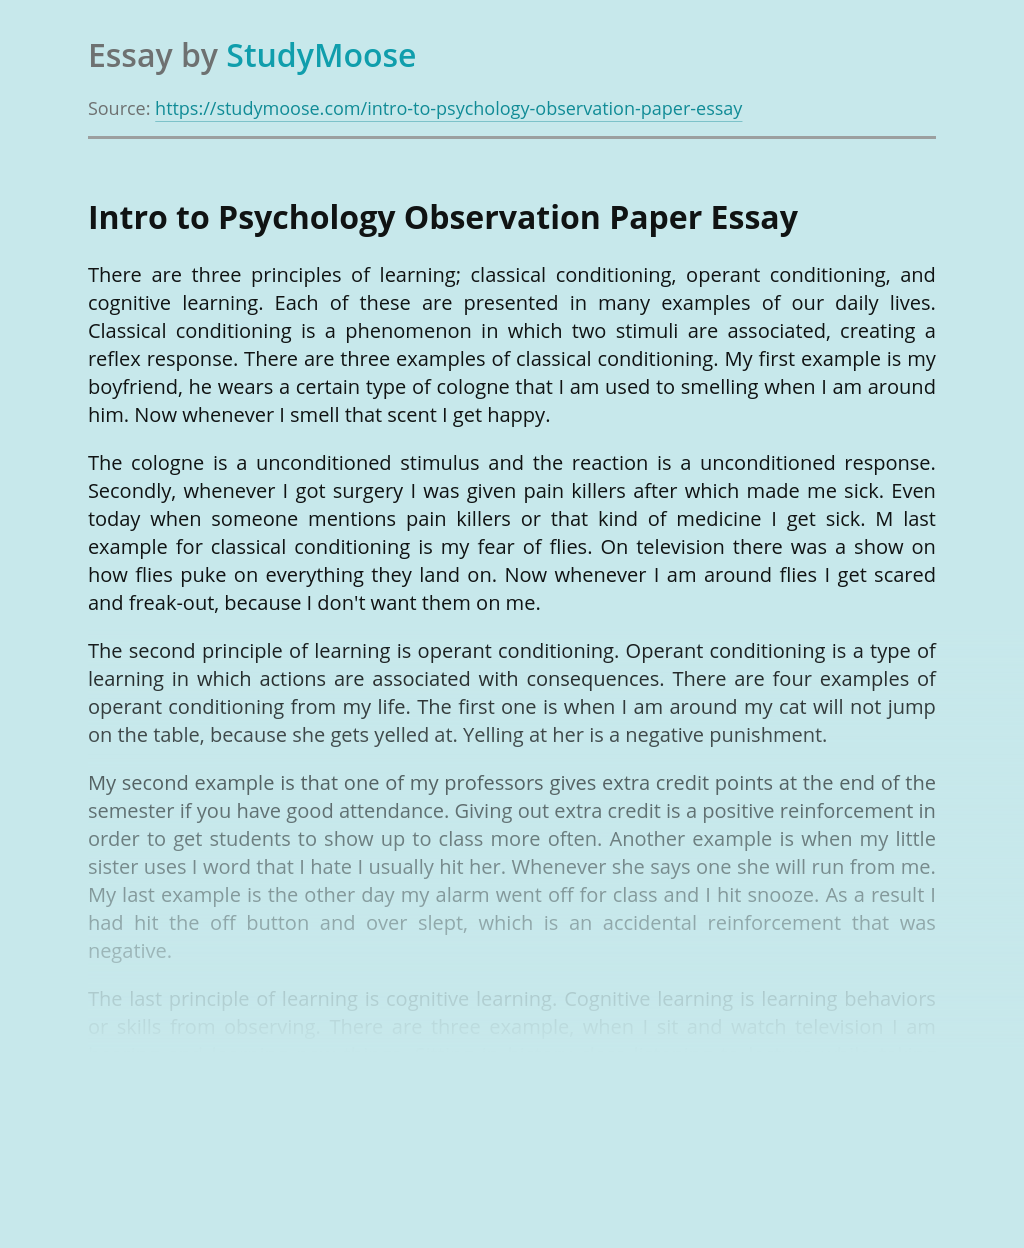 Intro to Psychology Observation Paper